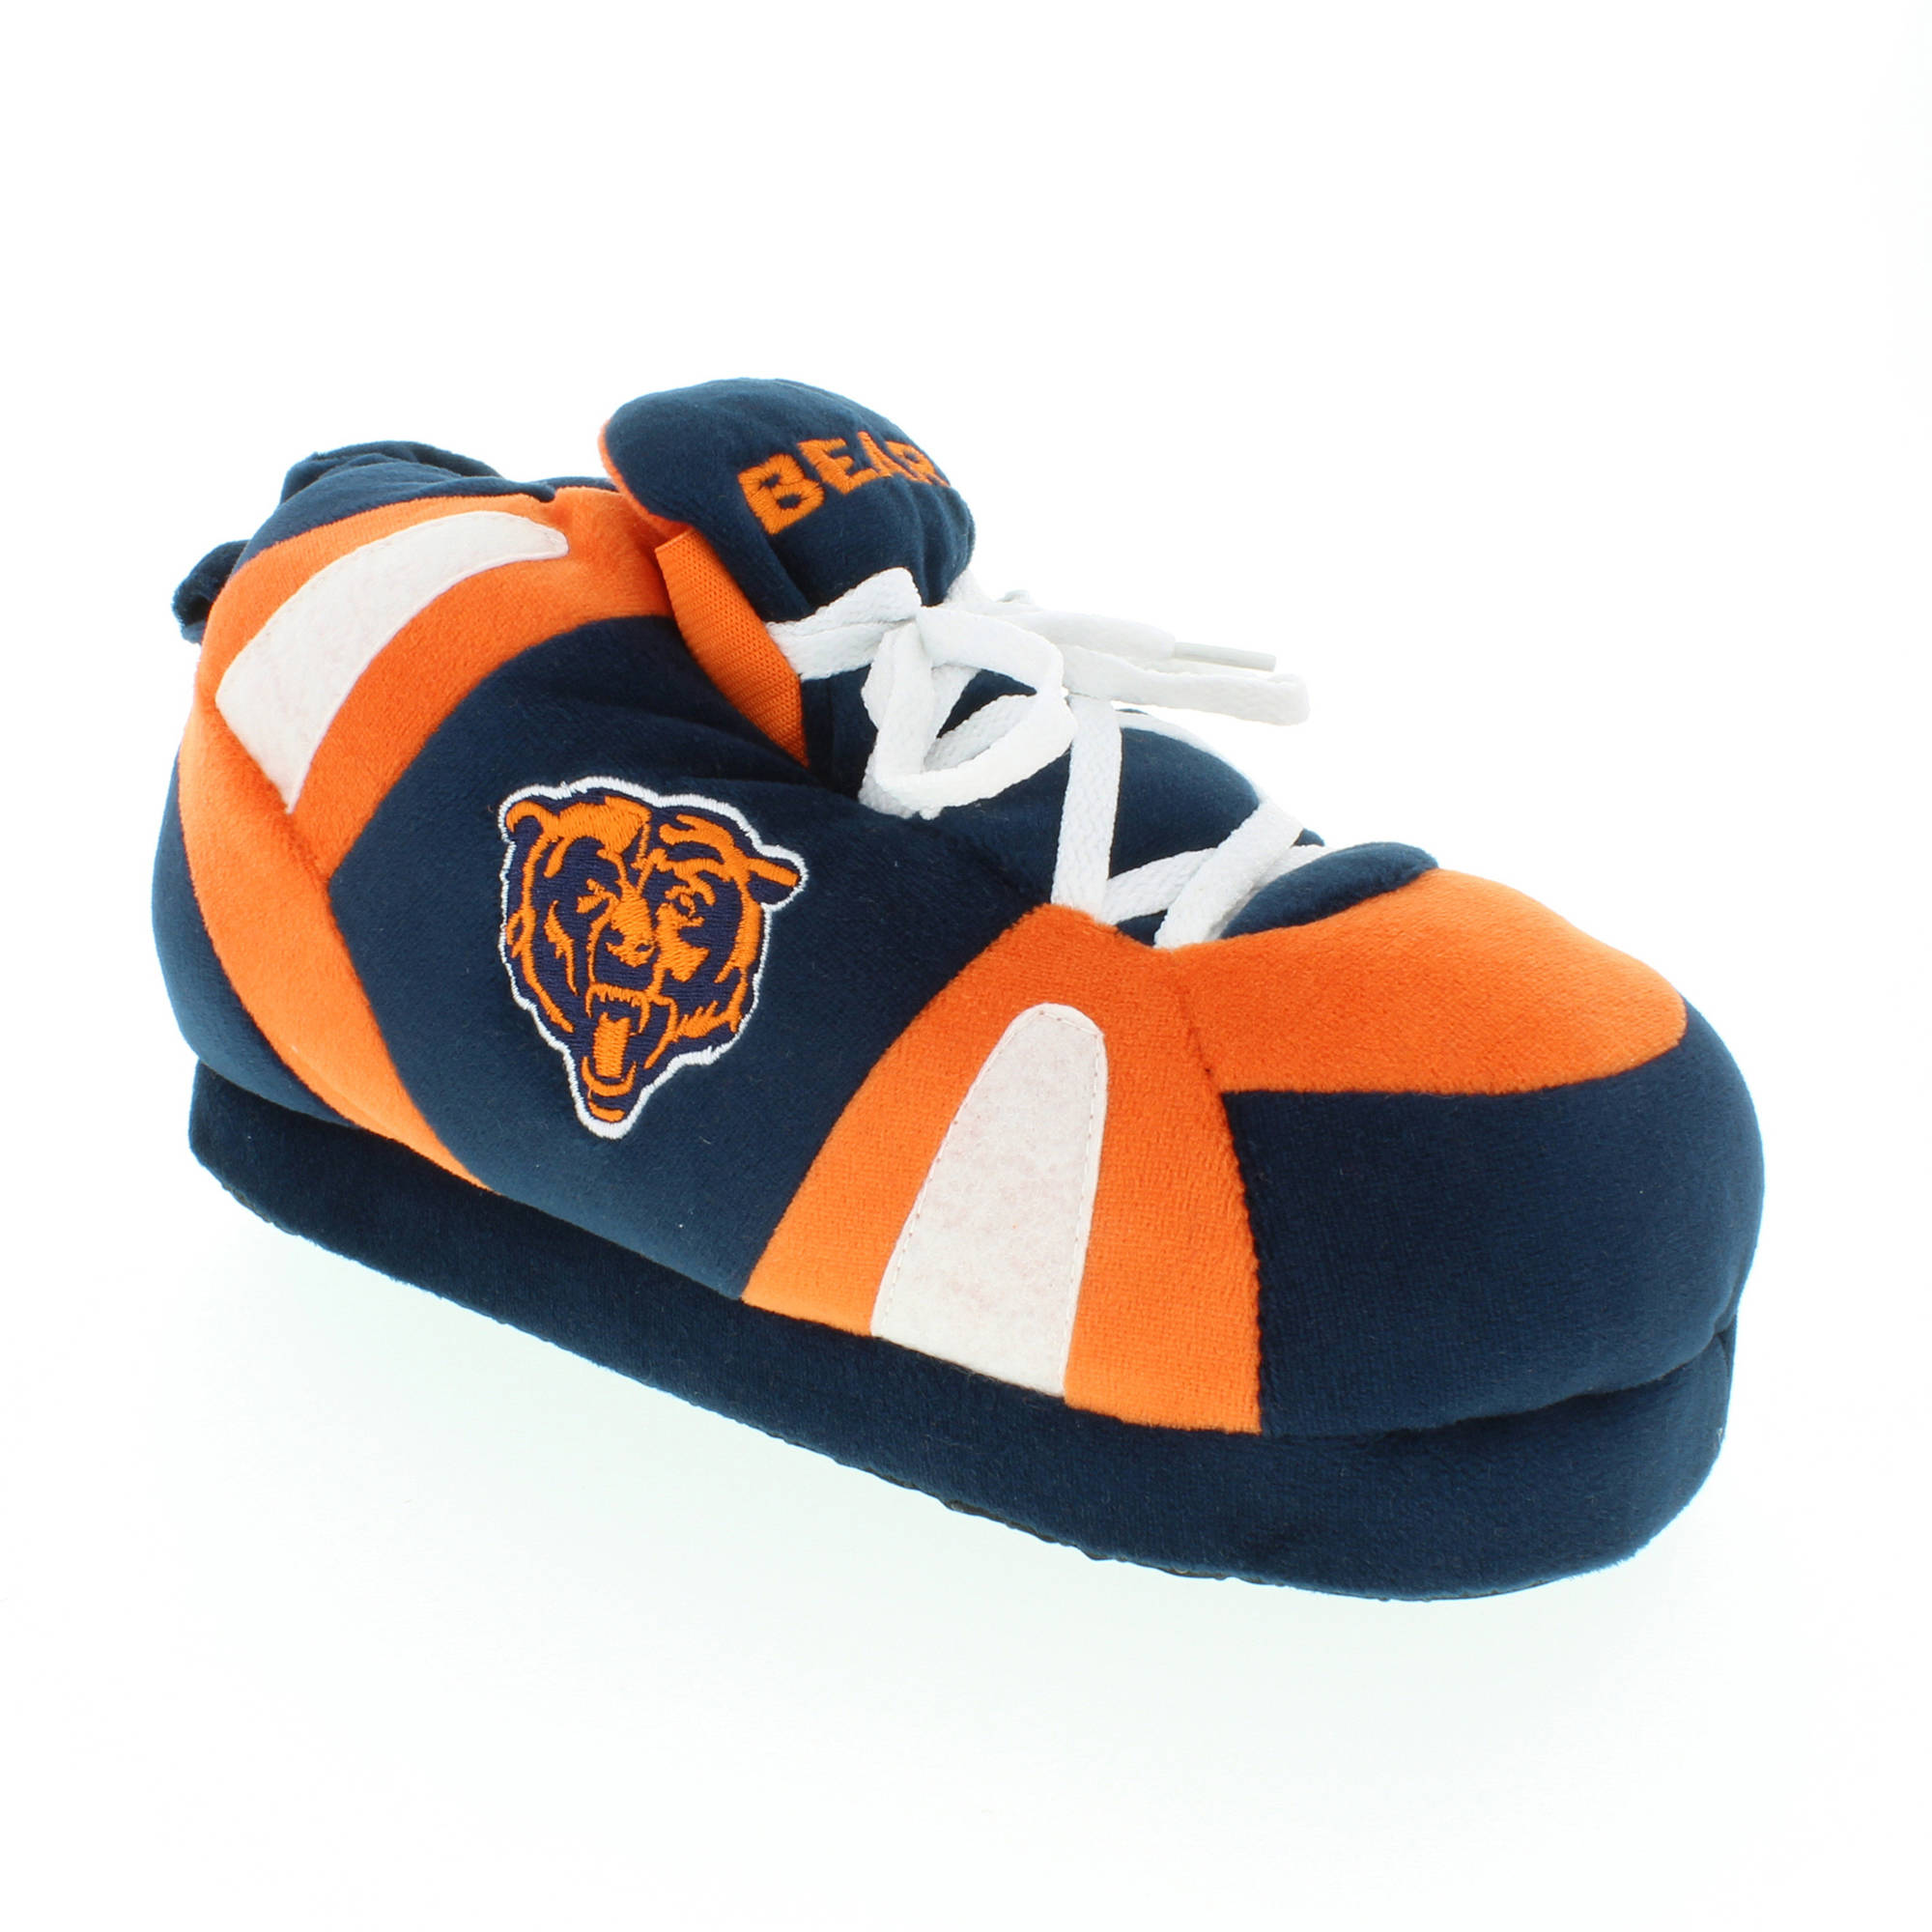 Comfy Feet - NFL Chicago Bears Slipper